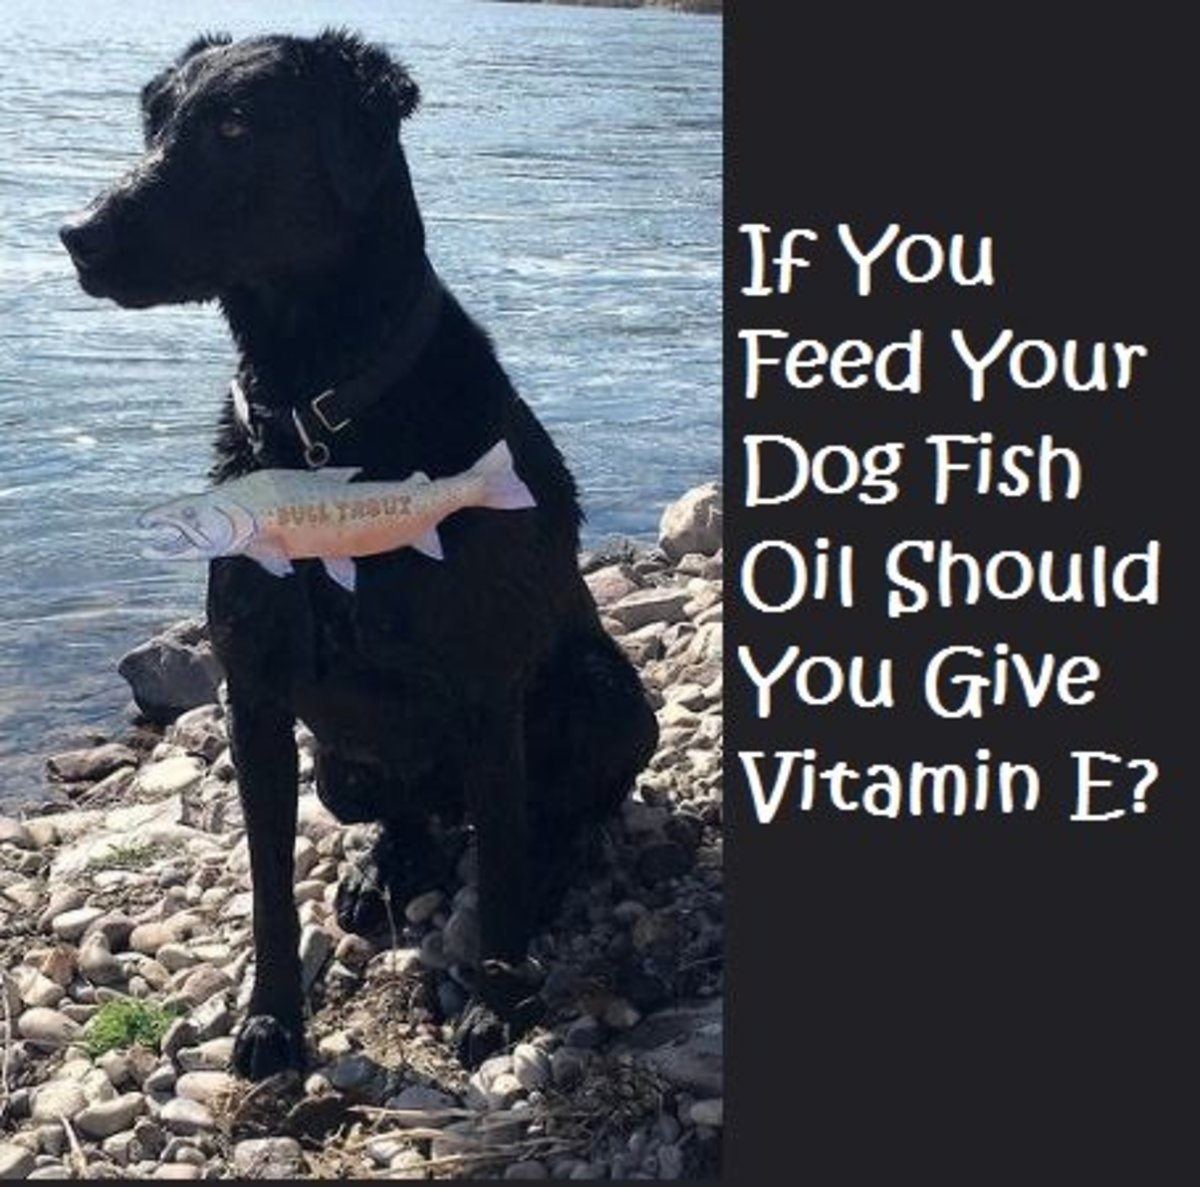 if-you-feed-your-dog-fish-oil-should-you-give-vitamin-e